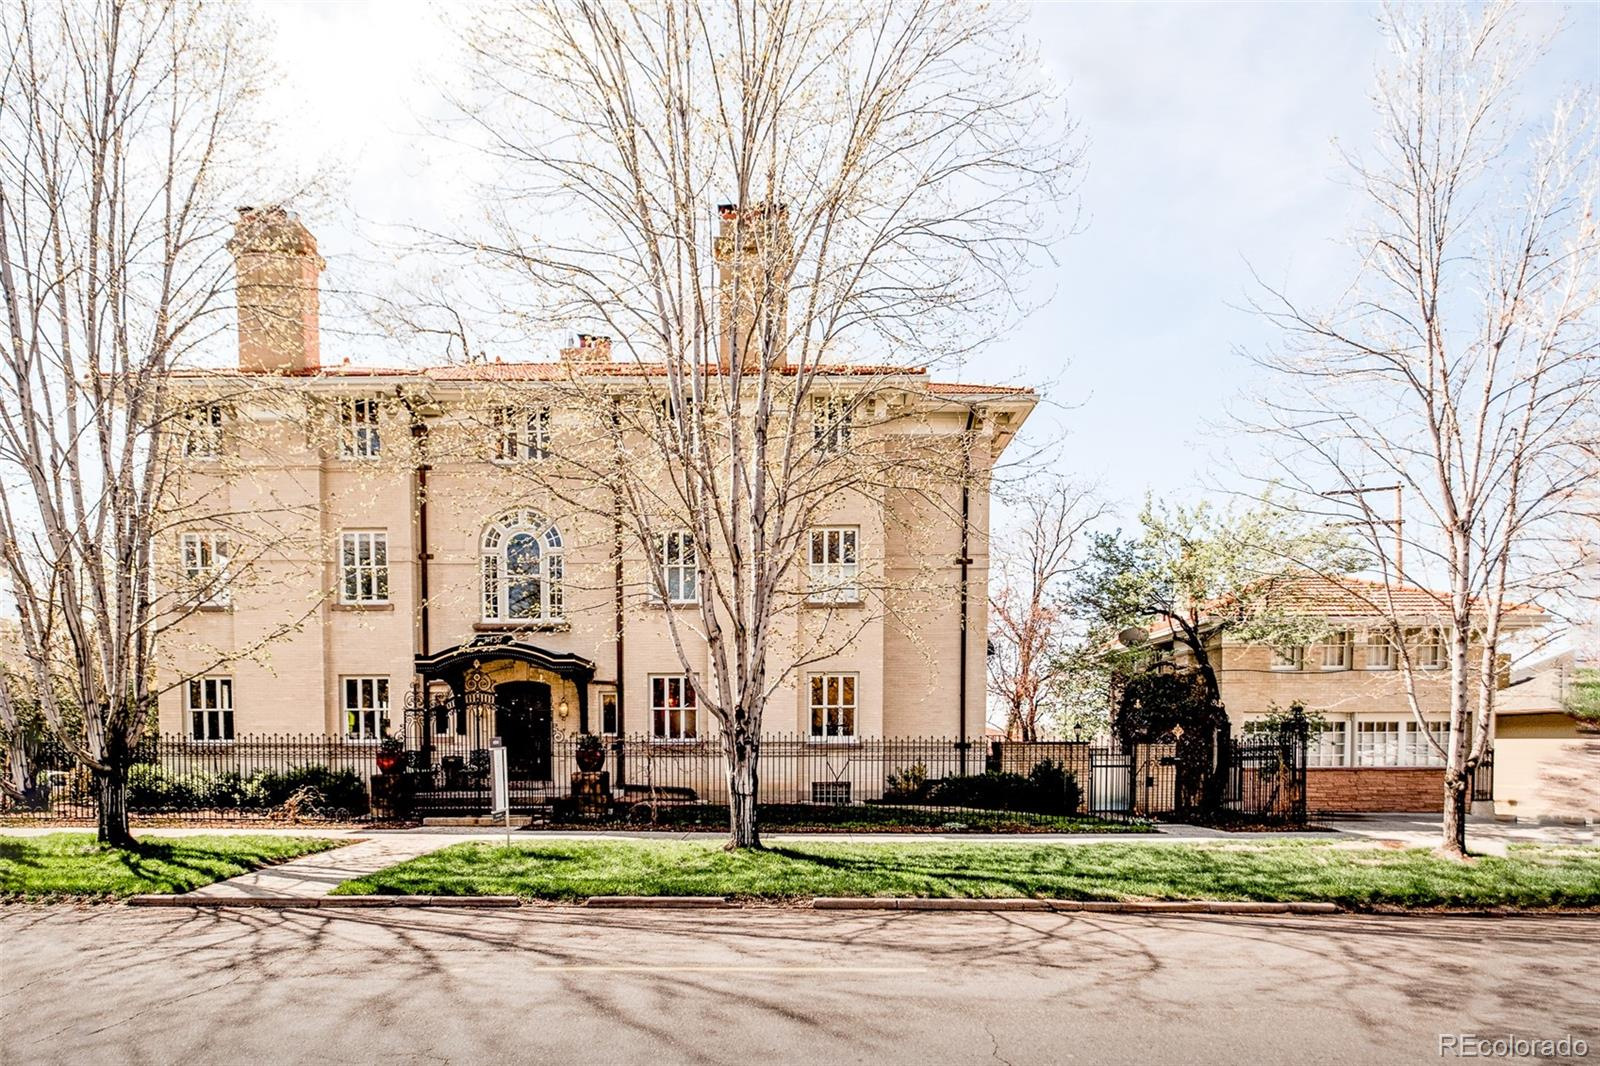 Lavish decadence ambles throughout this Denver landmark. Designed by Fisher + Fisher architecture, this estate has been lovingly restored into an extraordinary work of art that marries modern convenience w/ timeless prestige. The double-staircase entryway flaunts a historical allure that flows into a formal living room crowned by a chandelier + coffered ceilings. A chef's kitchen boasts a side by side Subzero fridge + freezer plus a Wolf range. A retrofitted elevator serves all 4 floors. Upstairs, the master suite astounds w/ a wet bar, fireplace, vast closet, sunroom + stunning en-suite bath. This luxurious motif dances throughout the remaining 5 bedrooms, 3rd floor den + a jaw-dropping lower level w/ a movie theater, home gym, wine cellar + more. Step outside into a 16k sq ft lot w/ mature trees, a lush lawn + 3-car detached garage. At the edge of the property, a 1,000 sq ft carriage house w/ a full bath + kitchen offers an unfettered Capitol Hill experience to VIP estate guests.  When showing this home, please comply with the following: 1) Please have all parties wear a mask at all times. Buyers and buyer's agent(s) must provide their own masks; 2) Please wear gloves at all times – these are provided in the house; 3) Please wear shoe coverings at all times – these are provided in the house; 4) When leaving the property, please take your gloves, masks and shoe coverings with you, please do not leave them at the house; 5) Please follow social distancing guidelines, 6 ft apart between parties; 6) Please leave lights as you found them; 7) Please do not use the restrooms in the house; 8) If you or any buyer is sick, please do not enter the home. Thank you on behalf of milehimodern.